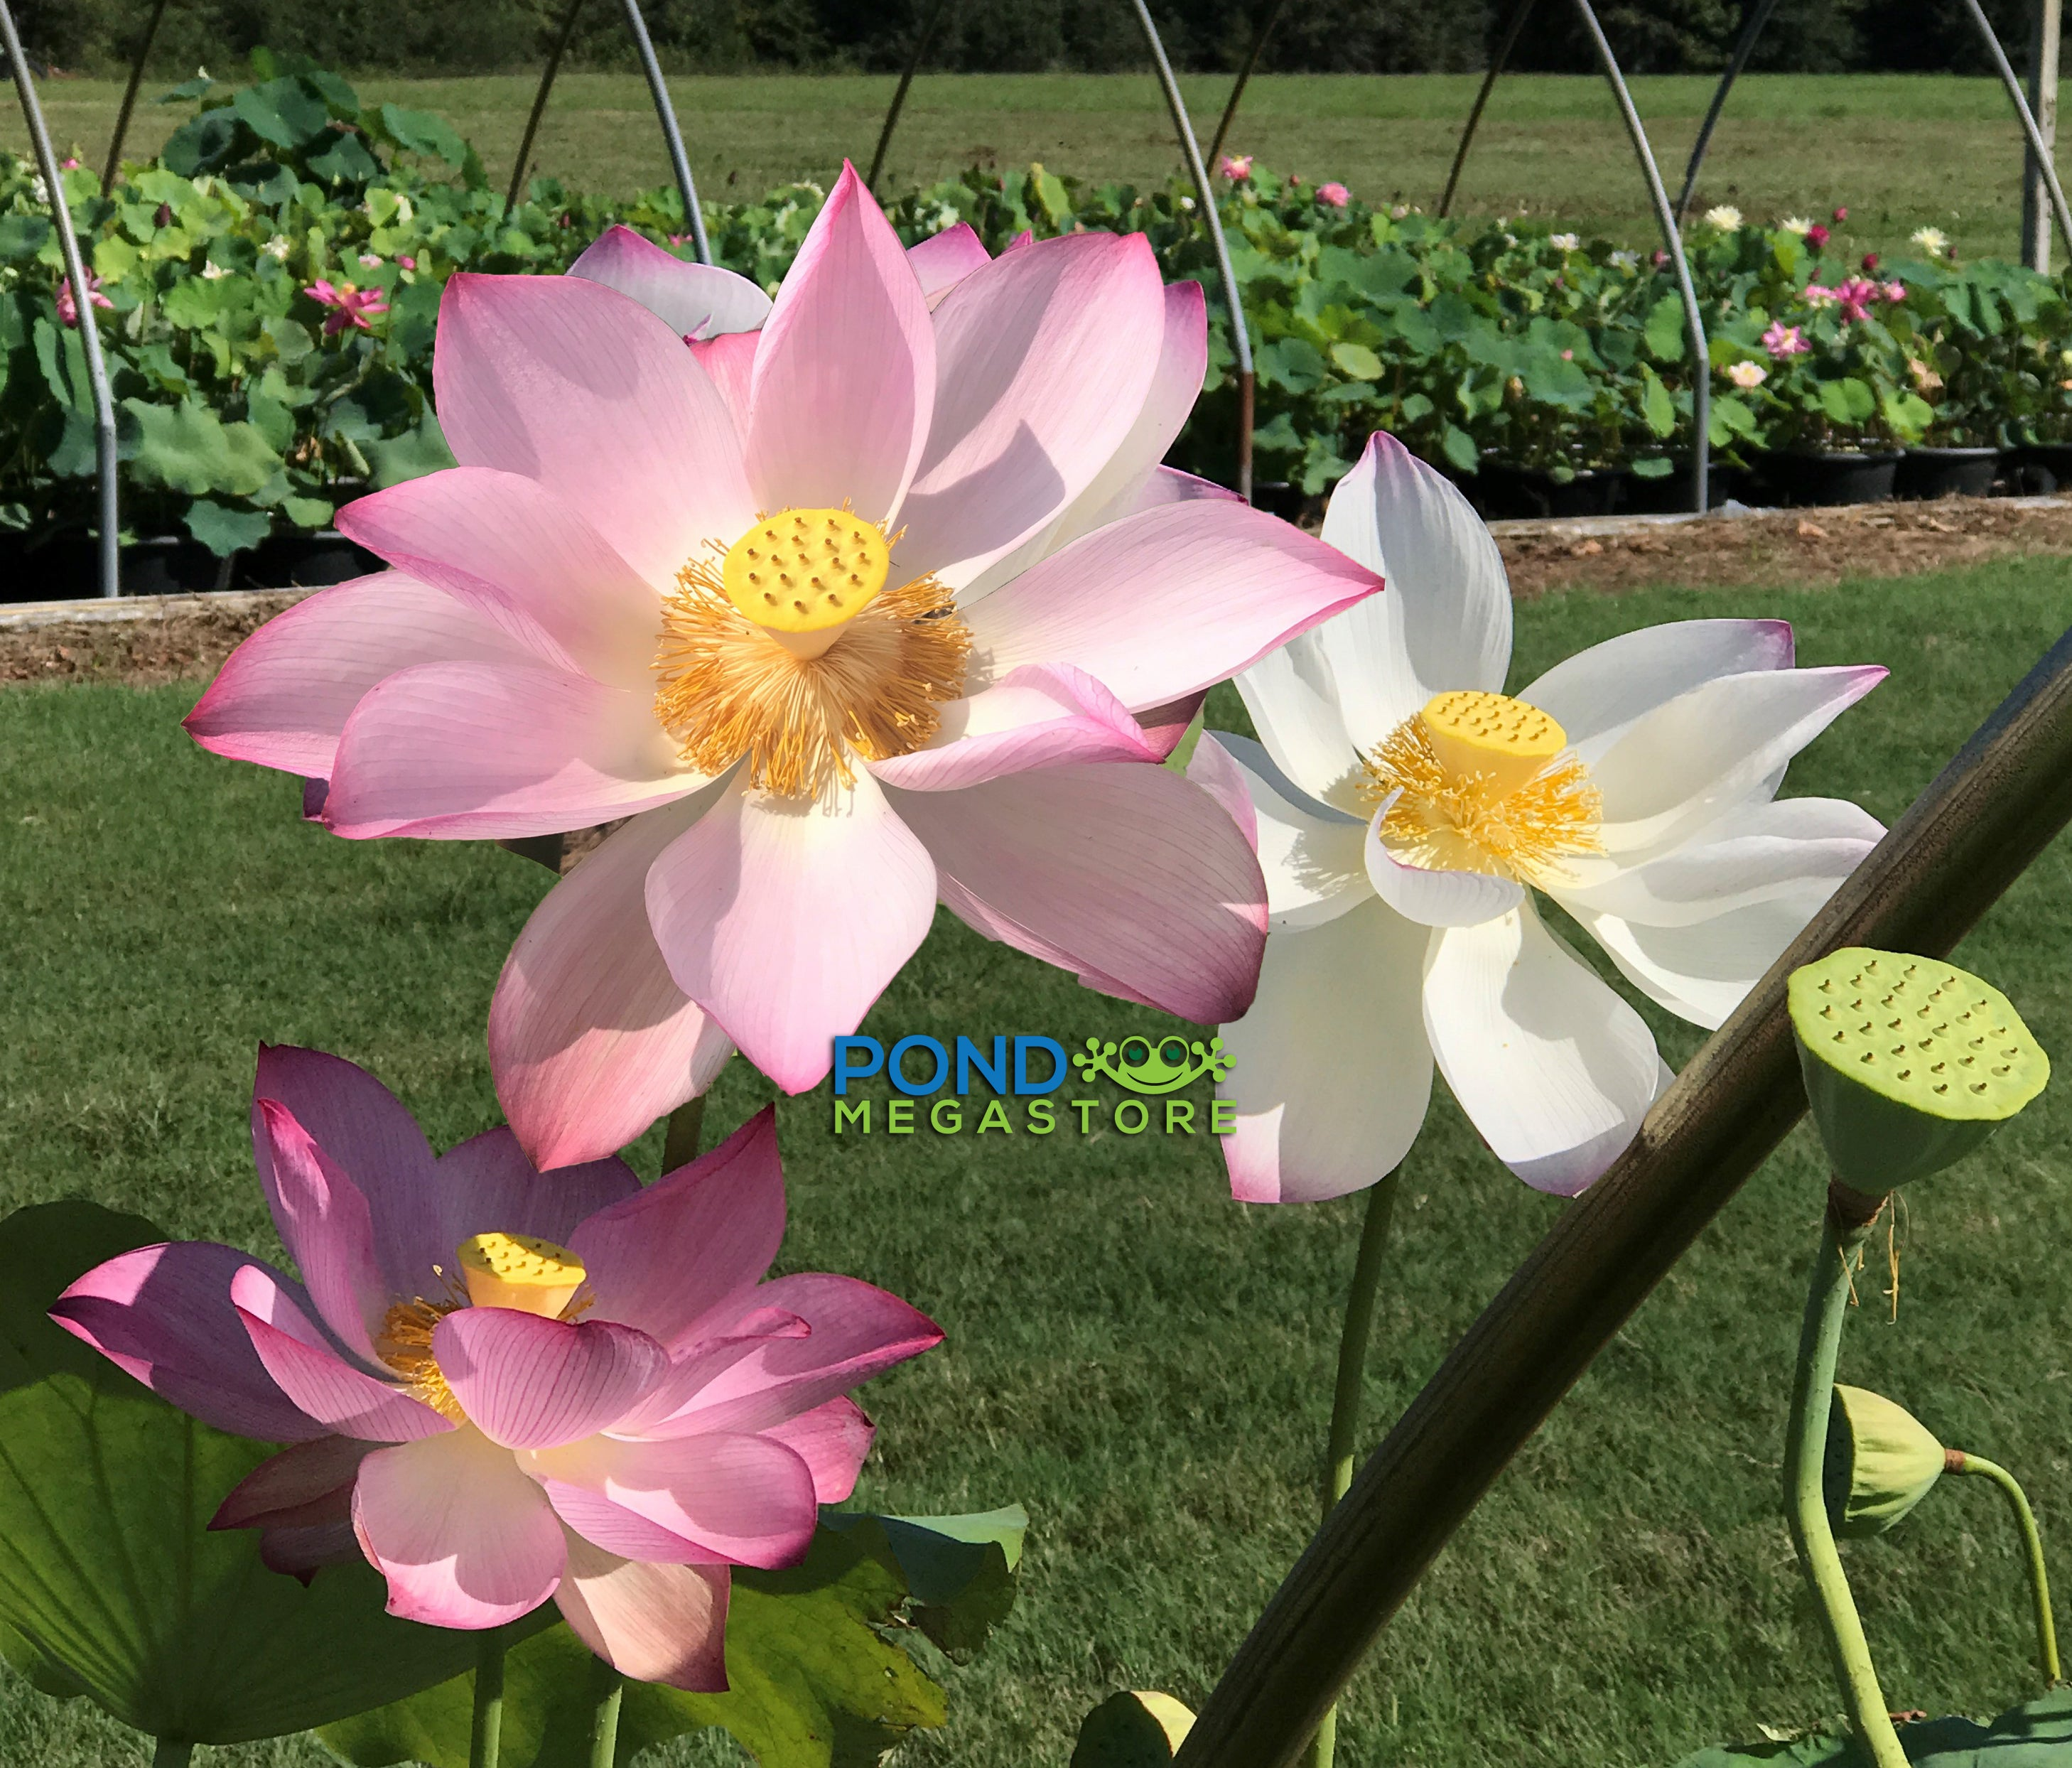 Jianxuan 17 Lotus Top Seed Producer Edible Lotus Pondmegastore